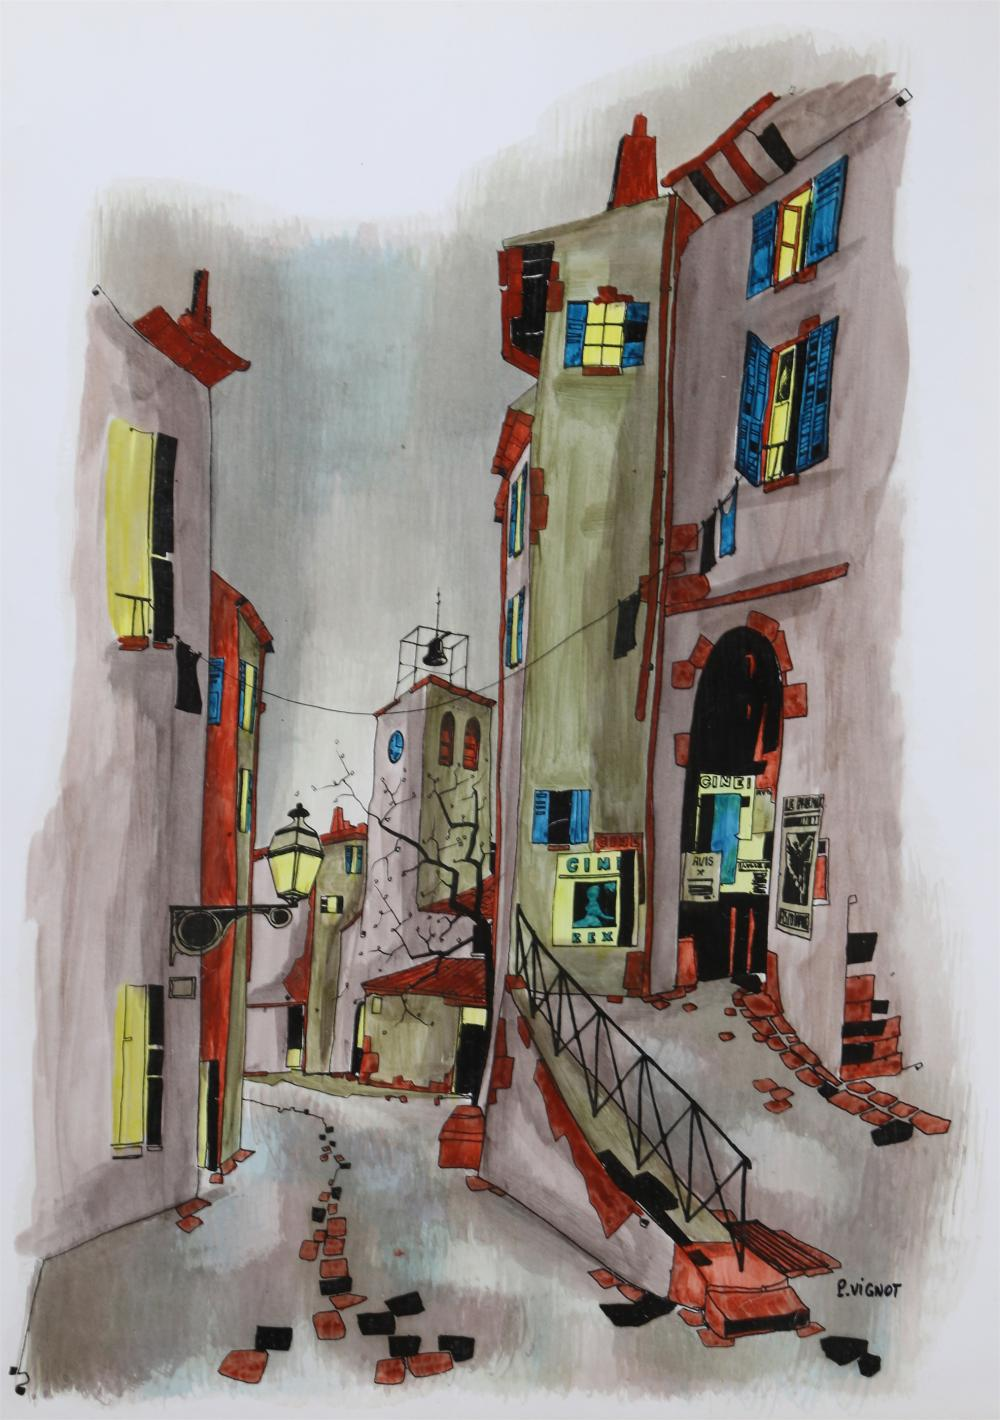 VIGNOT, GRAY CITYSCAPE, GOUACHE WITH GLAZE